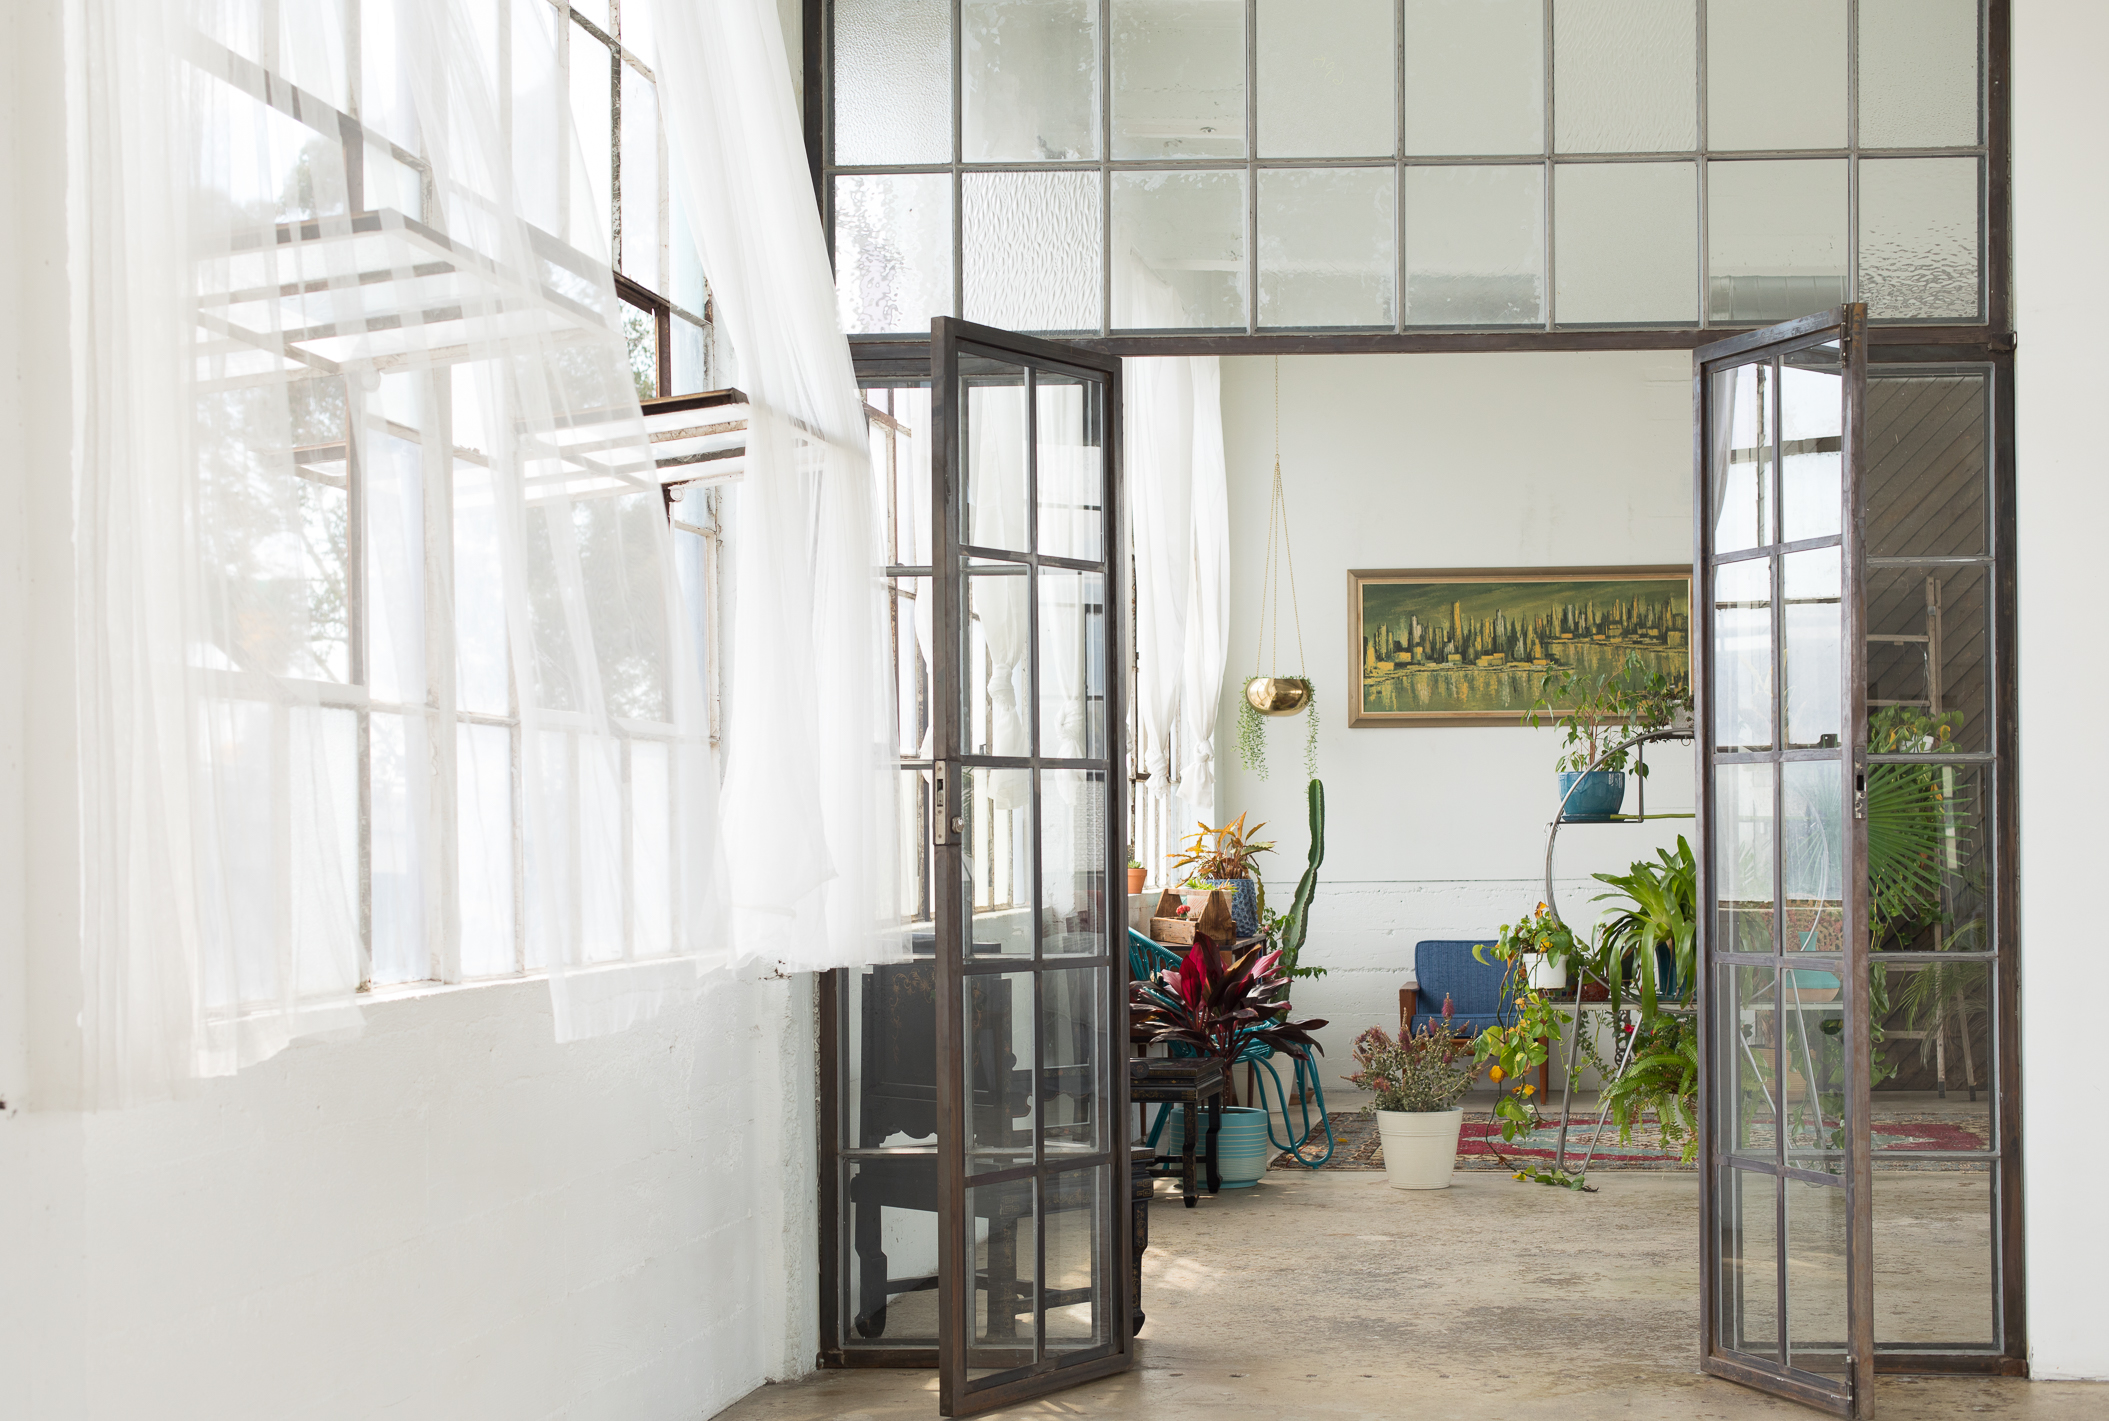 Lunette Loft - DTLAThis stunning, light drenched industrial loft space features both a beautifully Designed residential loft and a huge blank canvas corridor with high ceilings and entire walls of windows showing sweeping views of the downtown LA skyline.